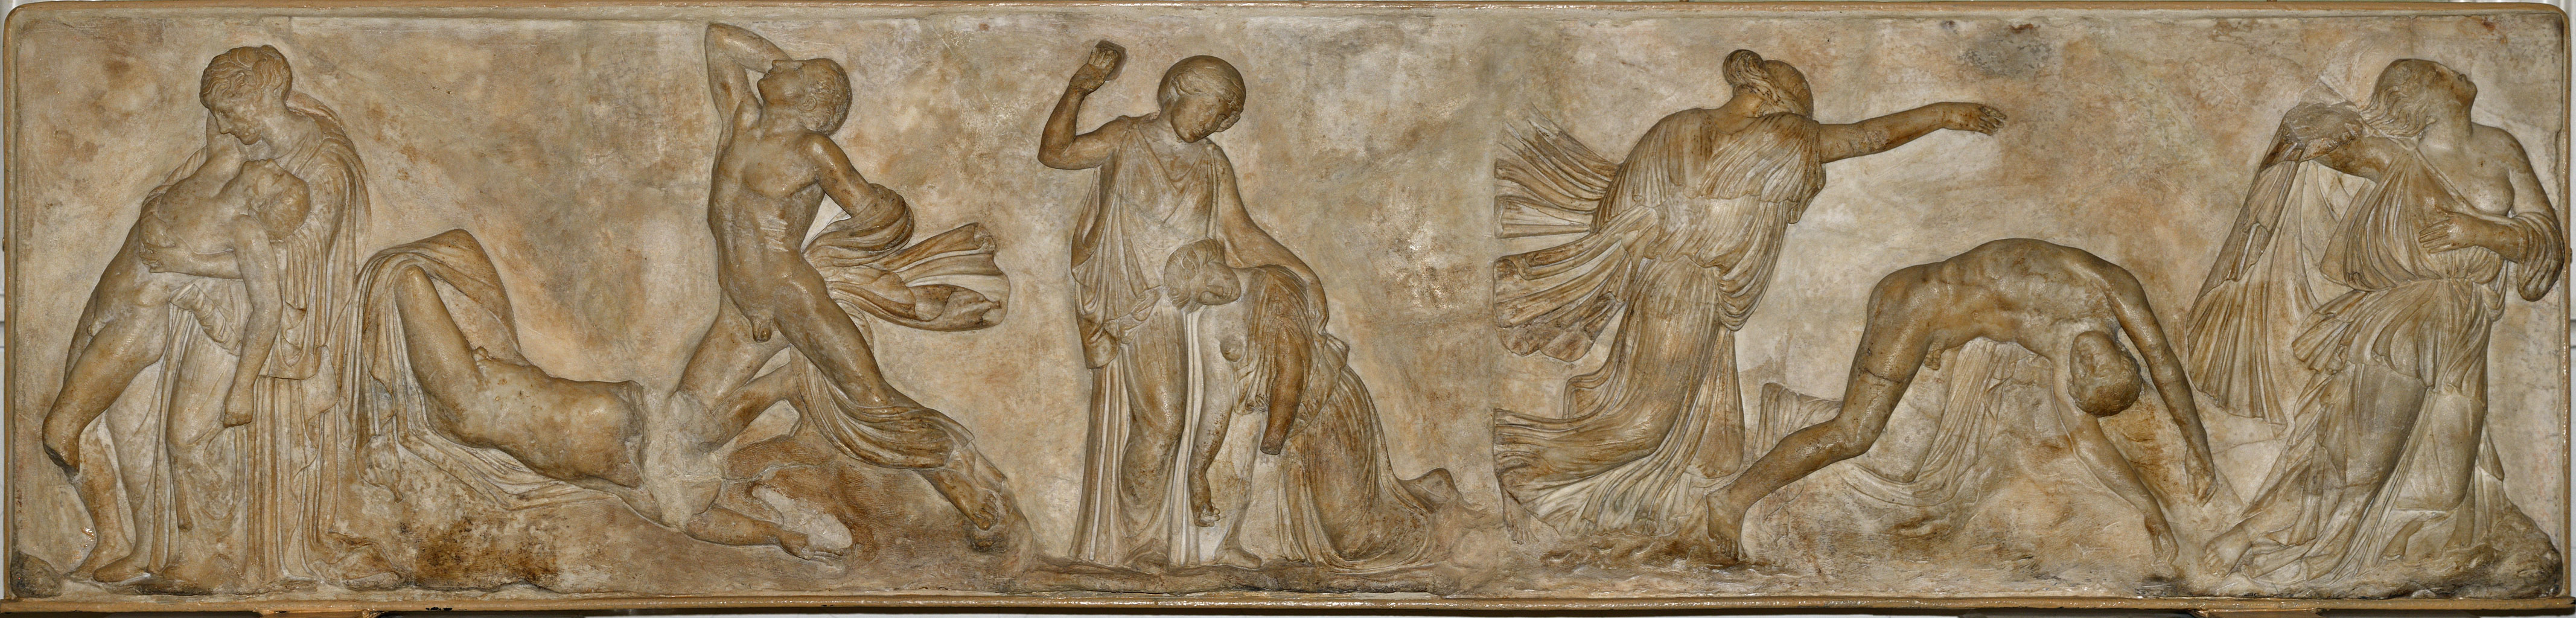 The Death of the Niobe's Children. Relief of a front panel of a sarcophagus. Marble. Roman work of the 1st century BCE (?) after a Greek original of the 430s BCE by Phidias. Inv. No. Гр. 4223 / A.434 Saint Petersburg, The State Hermitage Museum